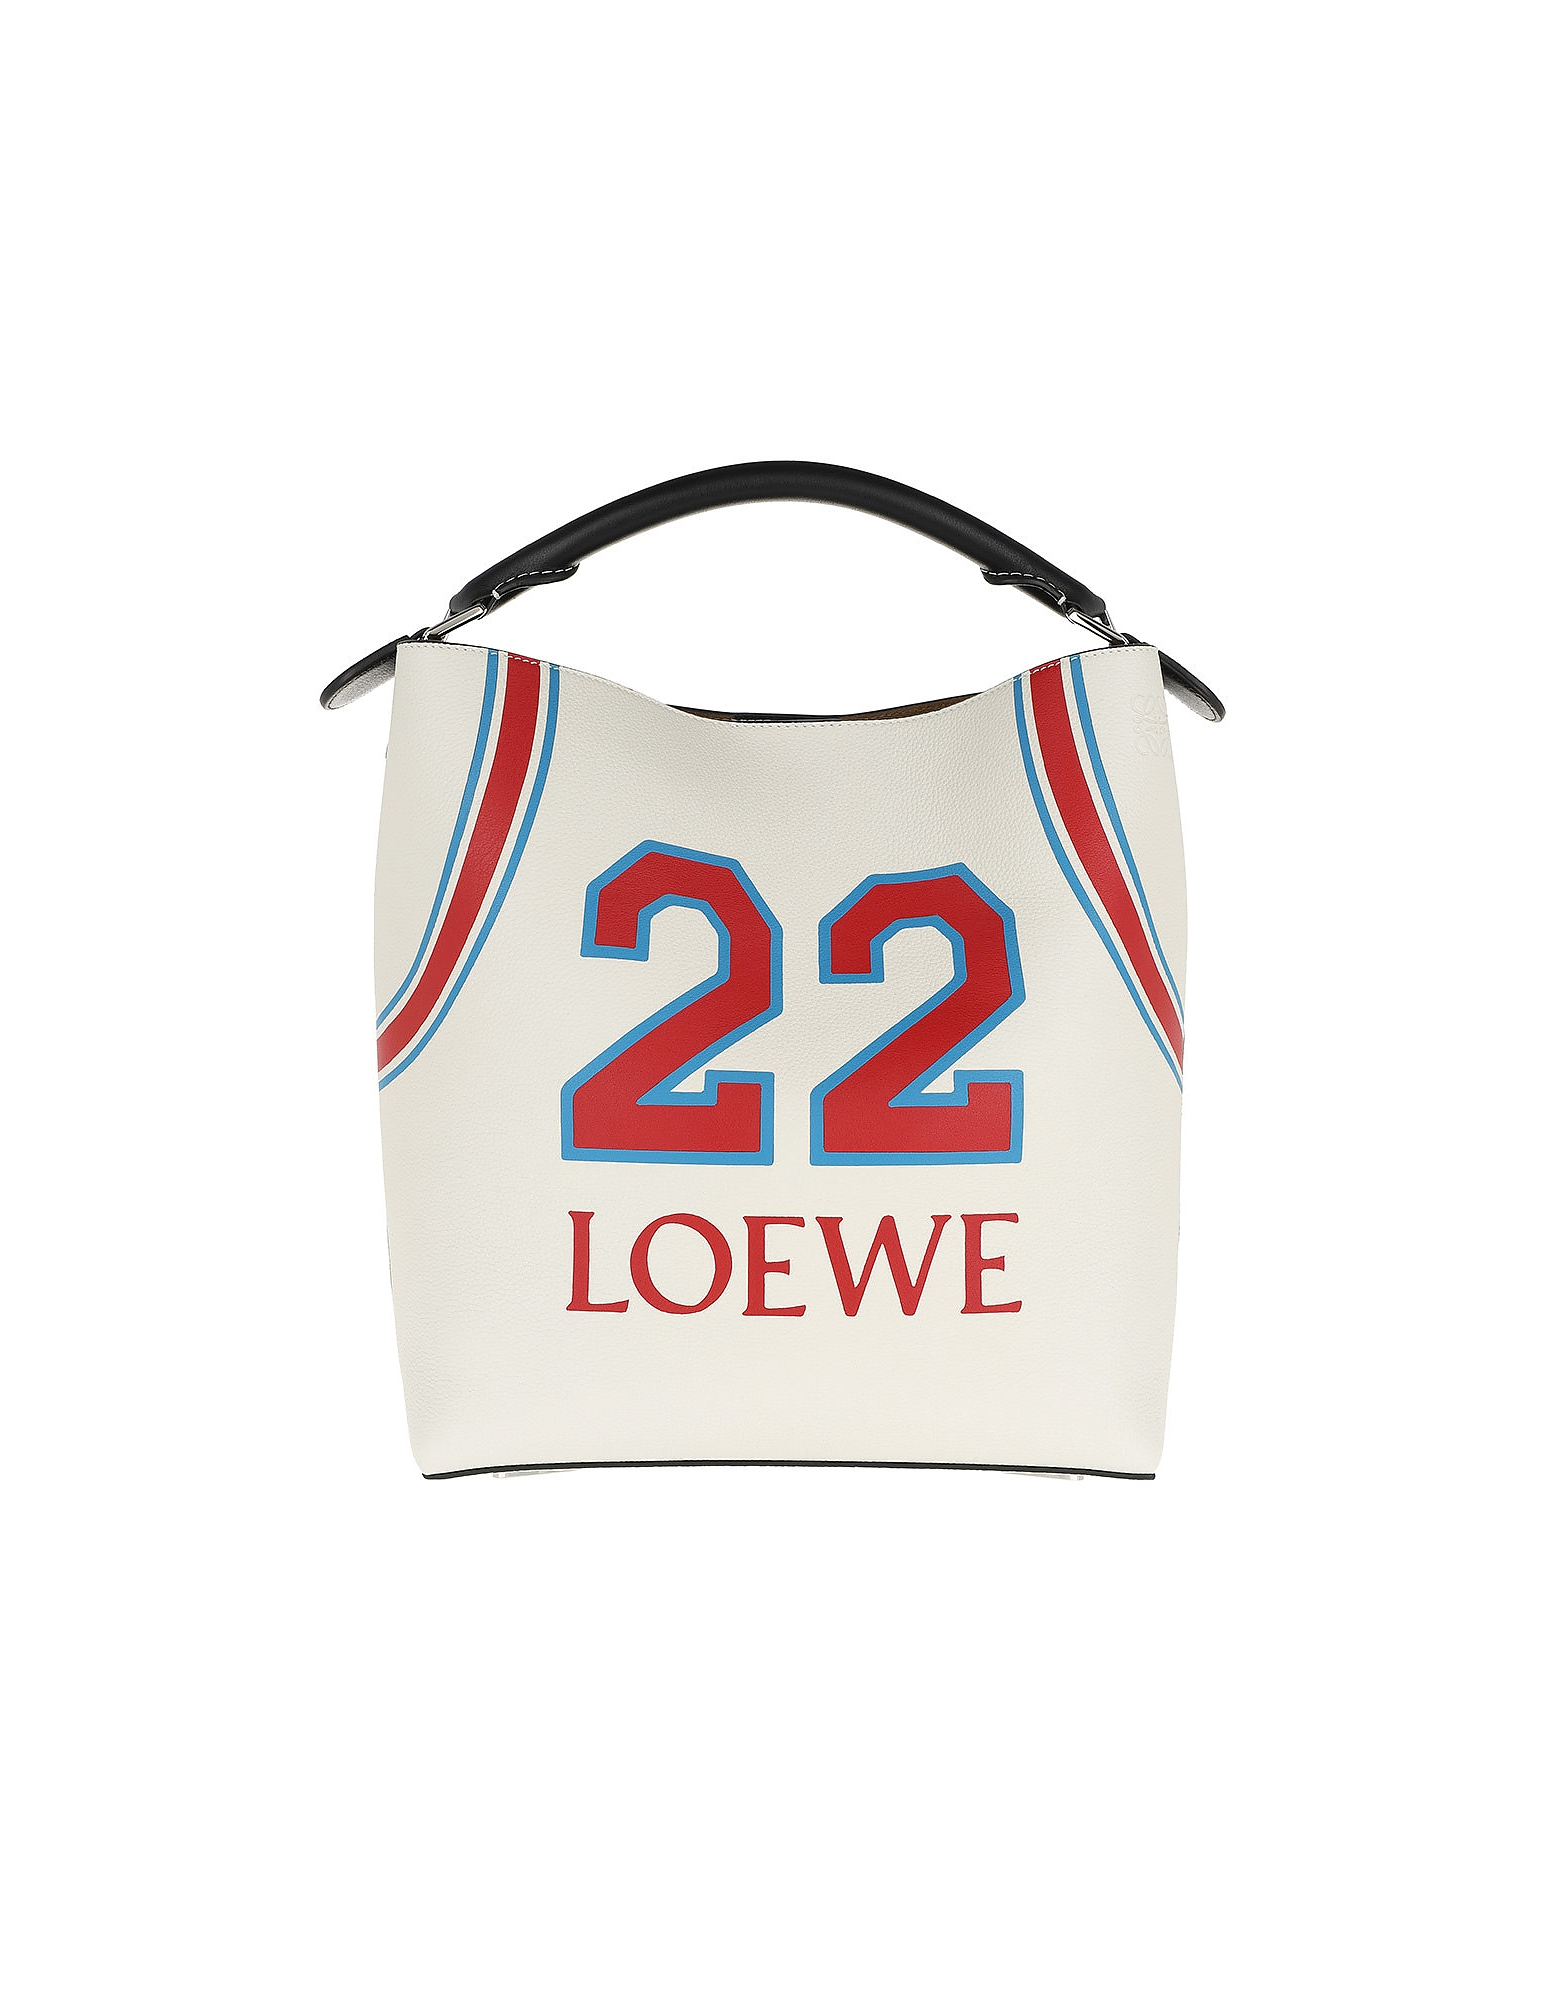 T Bucket Loewe 22 Bag Soft White/Red